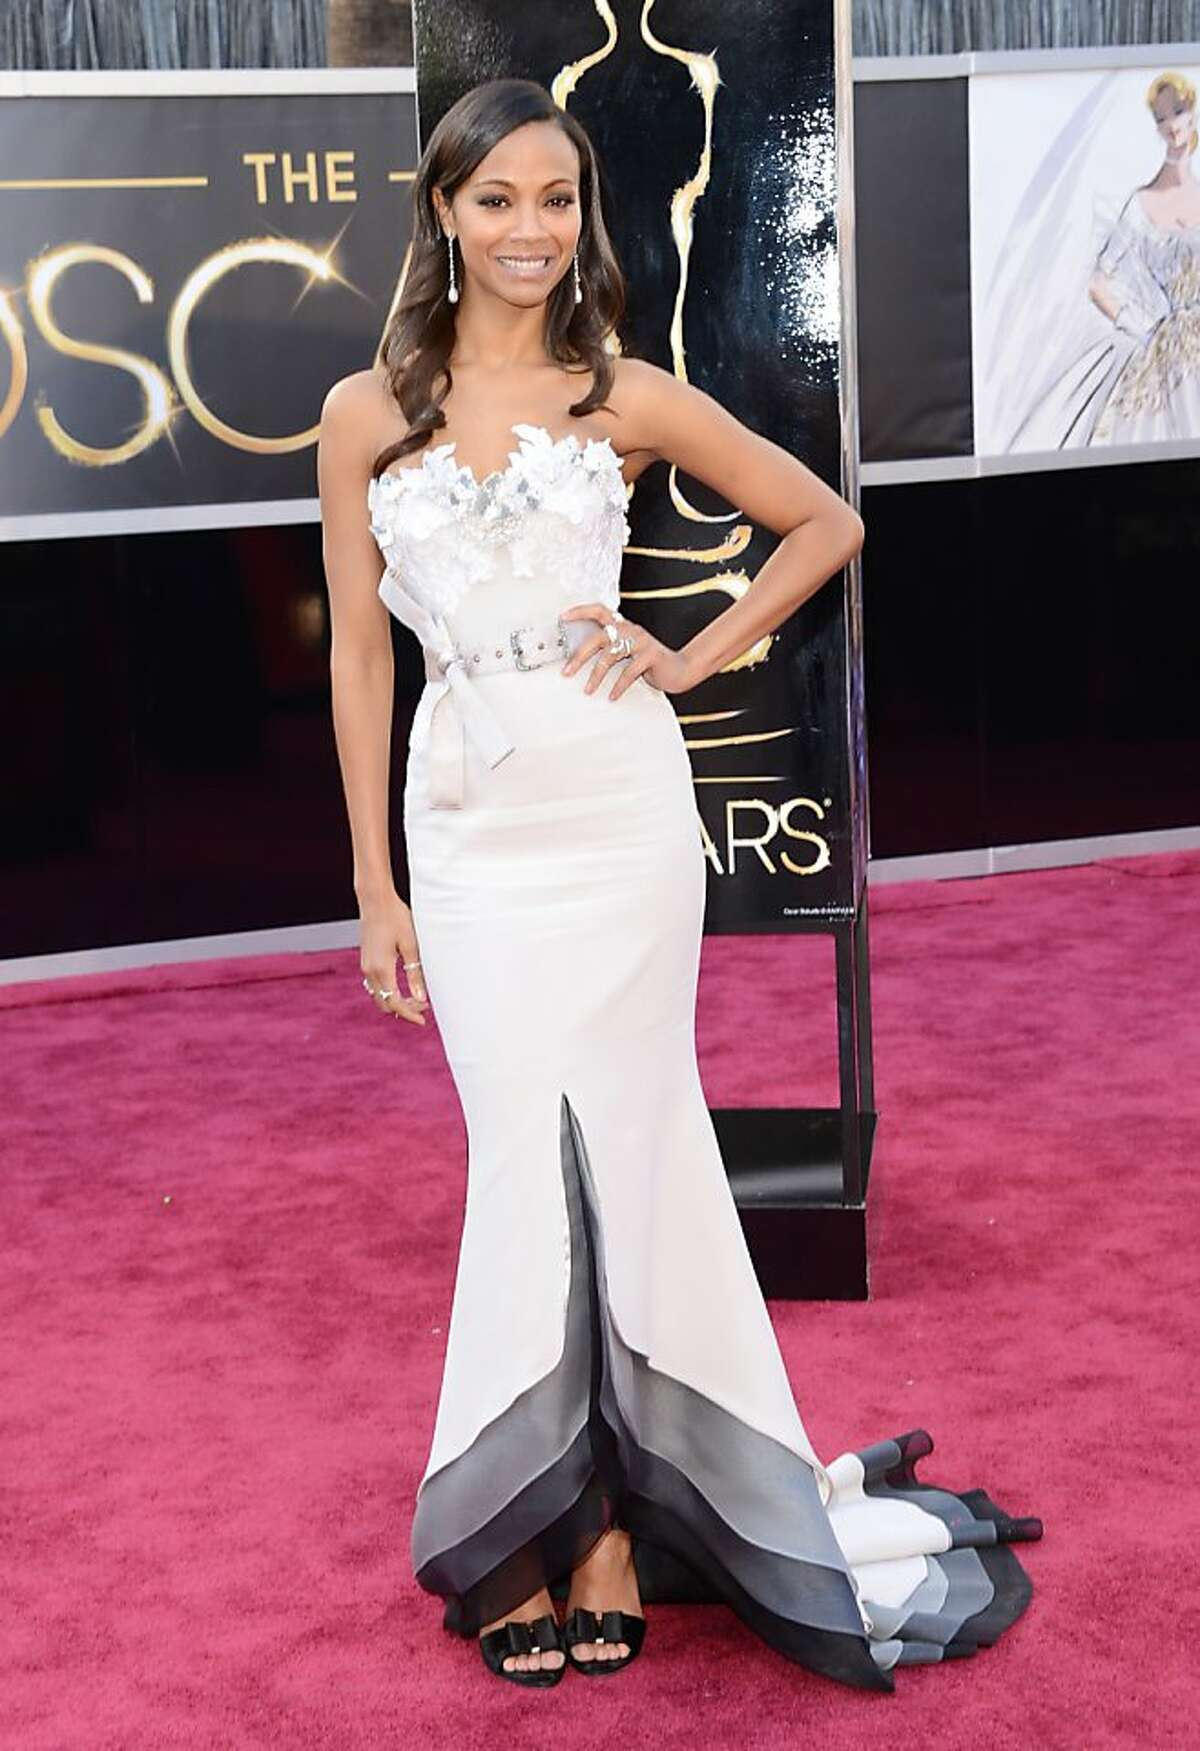 Worst: Zoe Saldana. The belt? Also, why did everyone diet down to Fantine-level skinny?